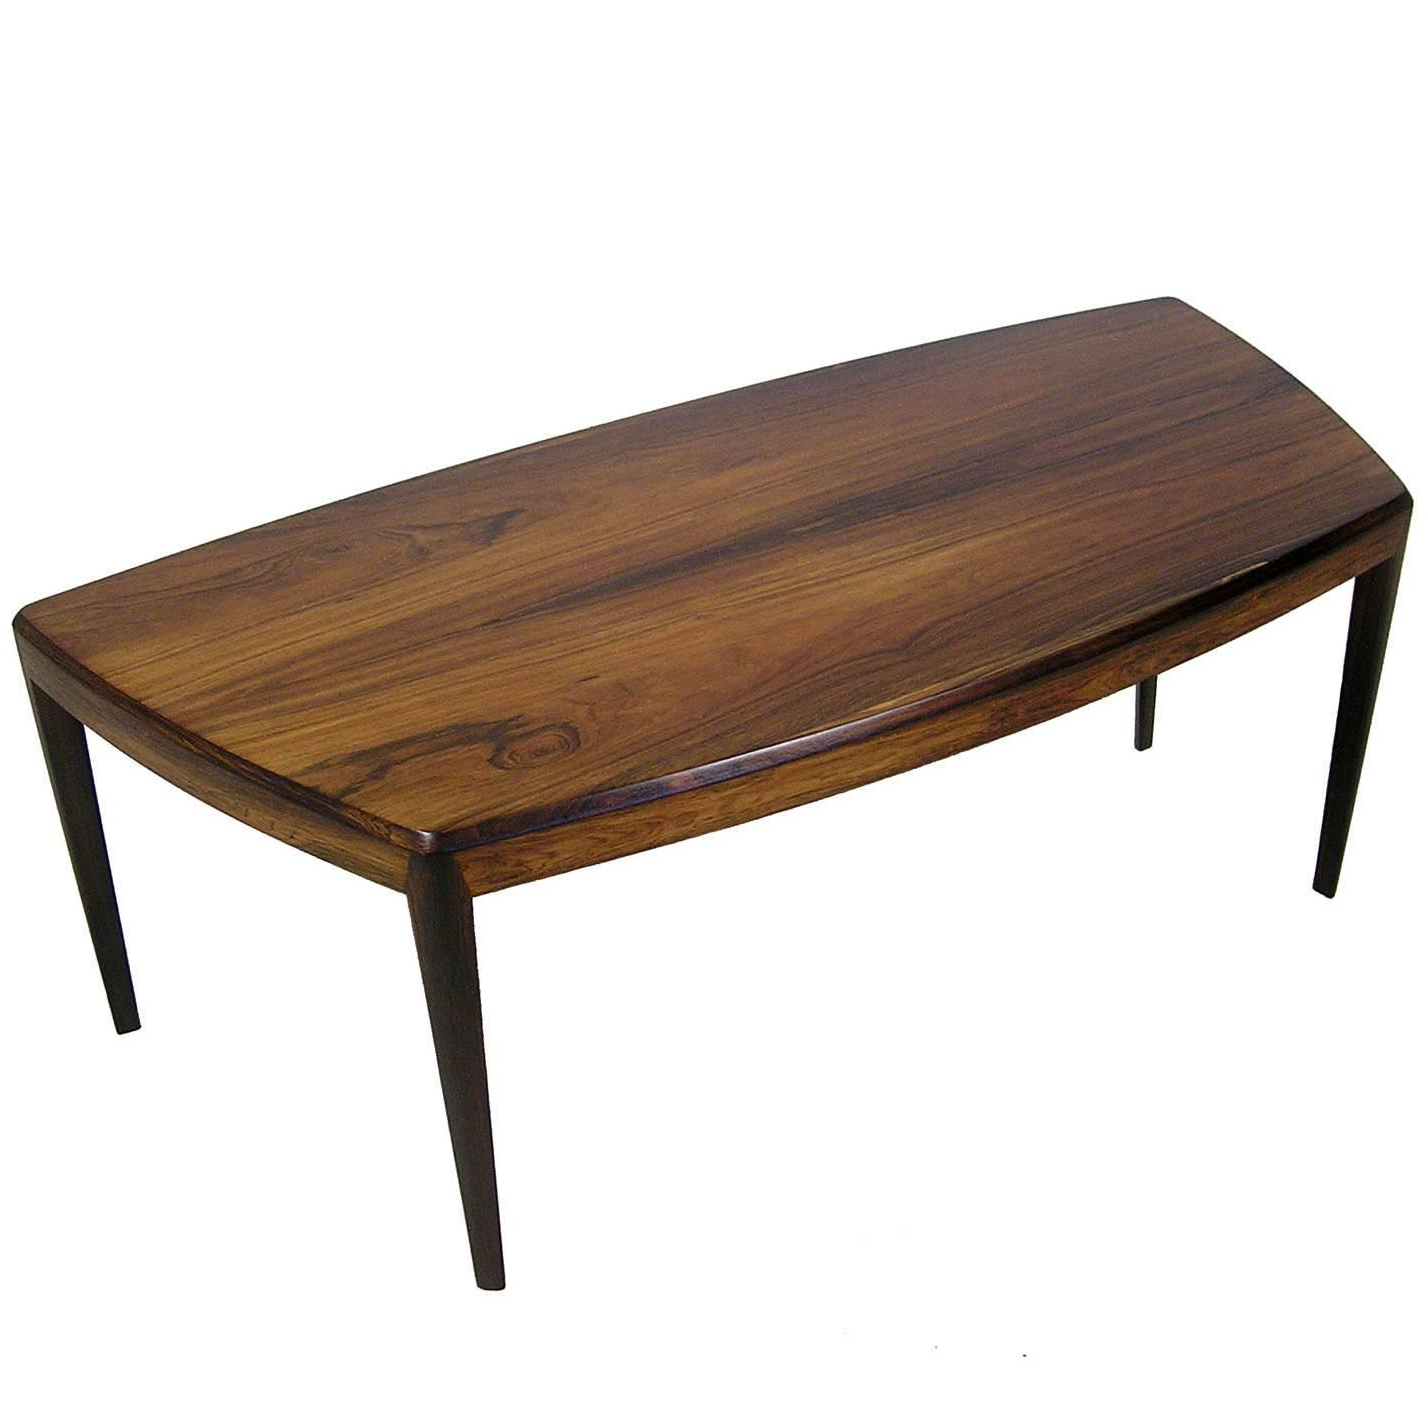 Widely Used 1960S Brazilian Rosewood Coffee Tablekai Kristiansen, Denmark Intended For Kai Large Cocktail Tables (View 20 of 20)